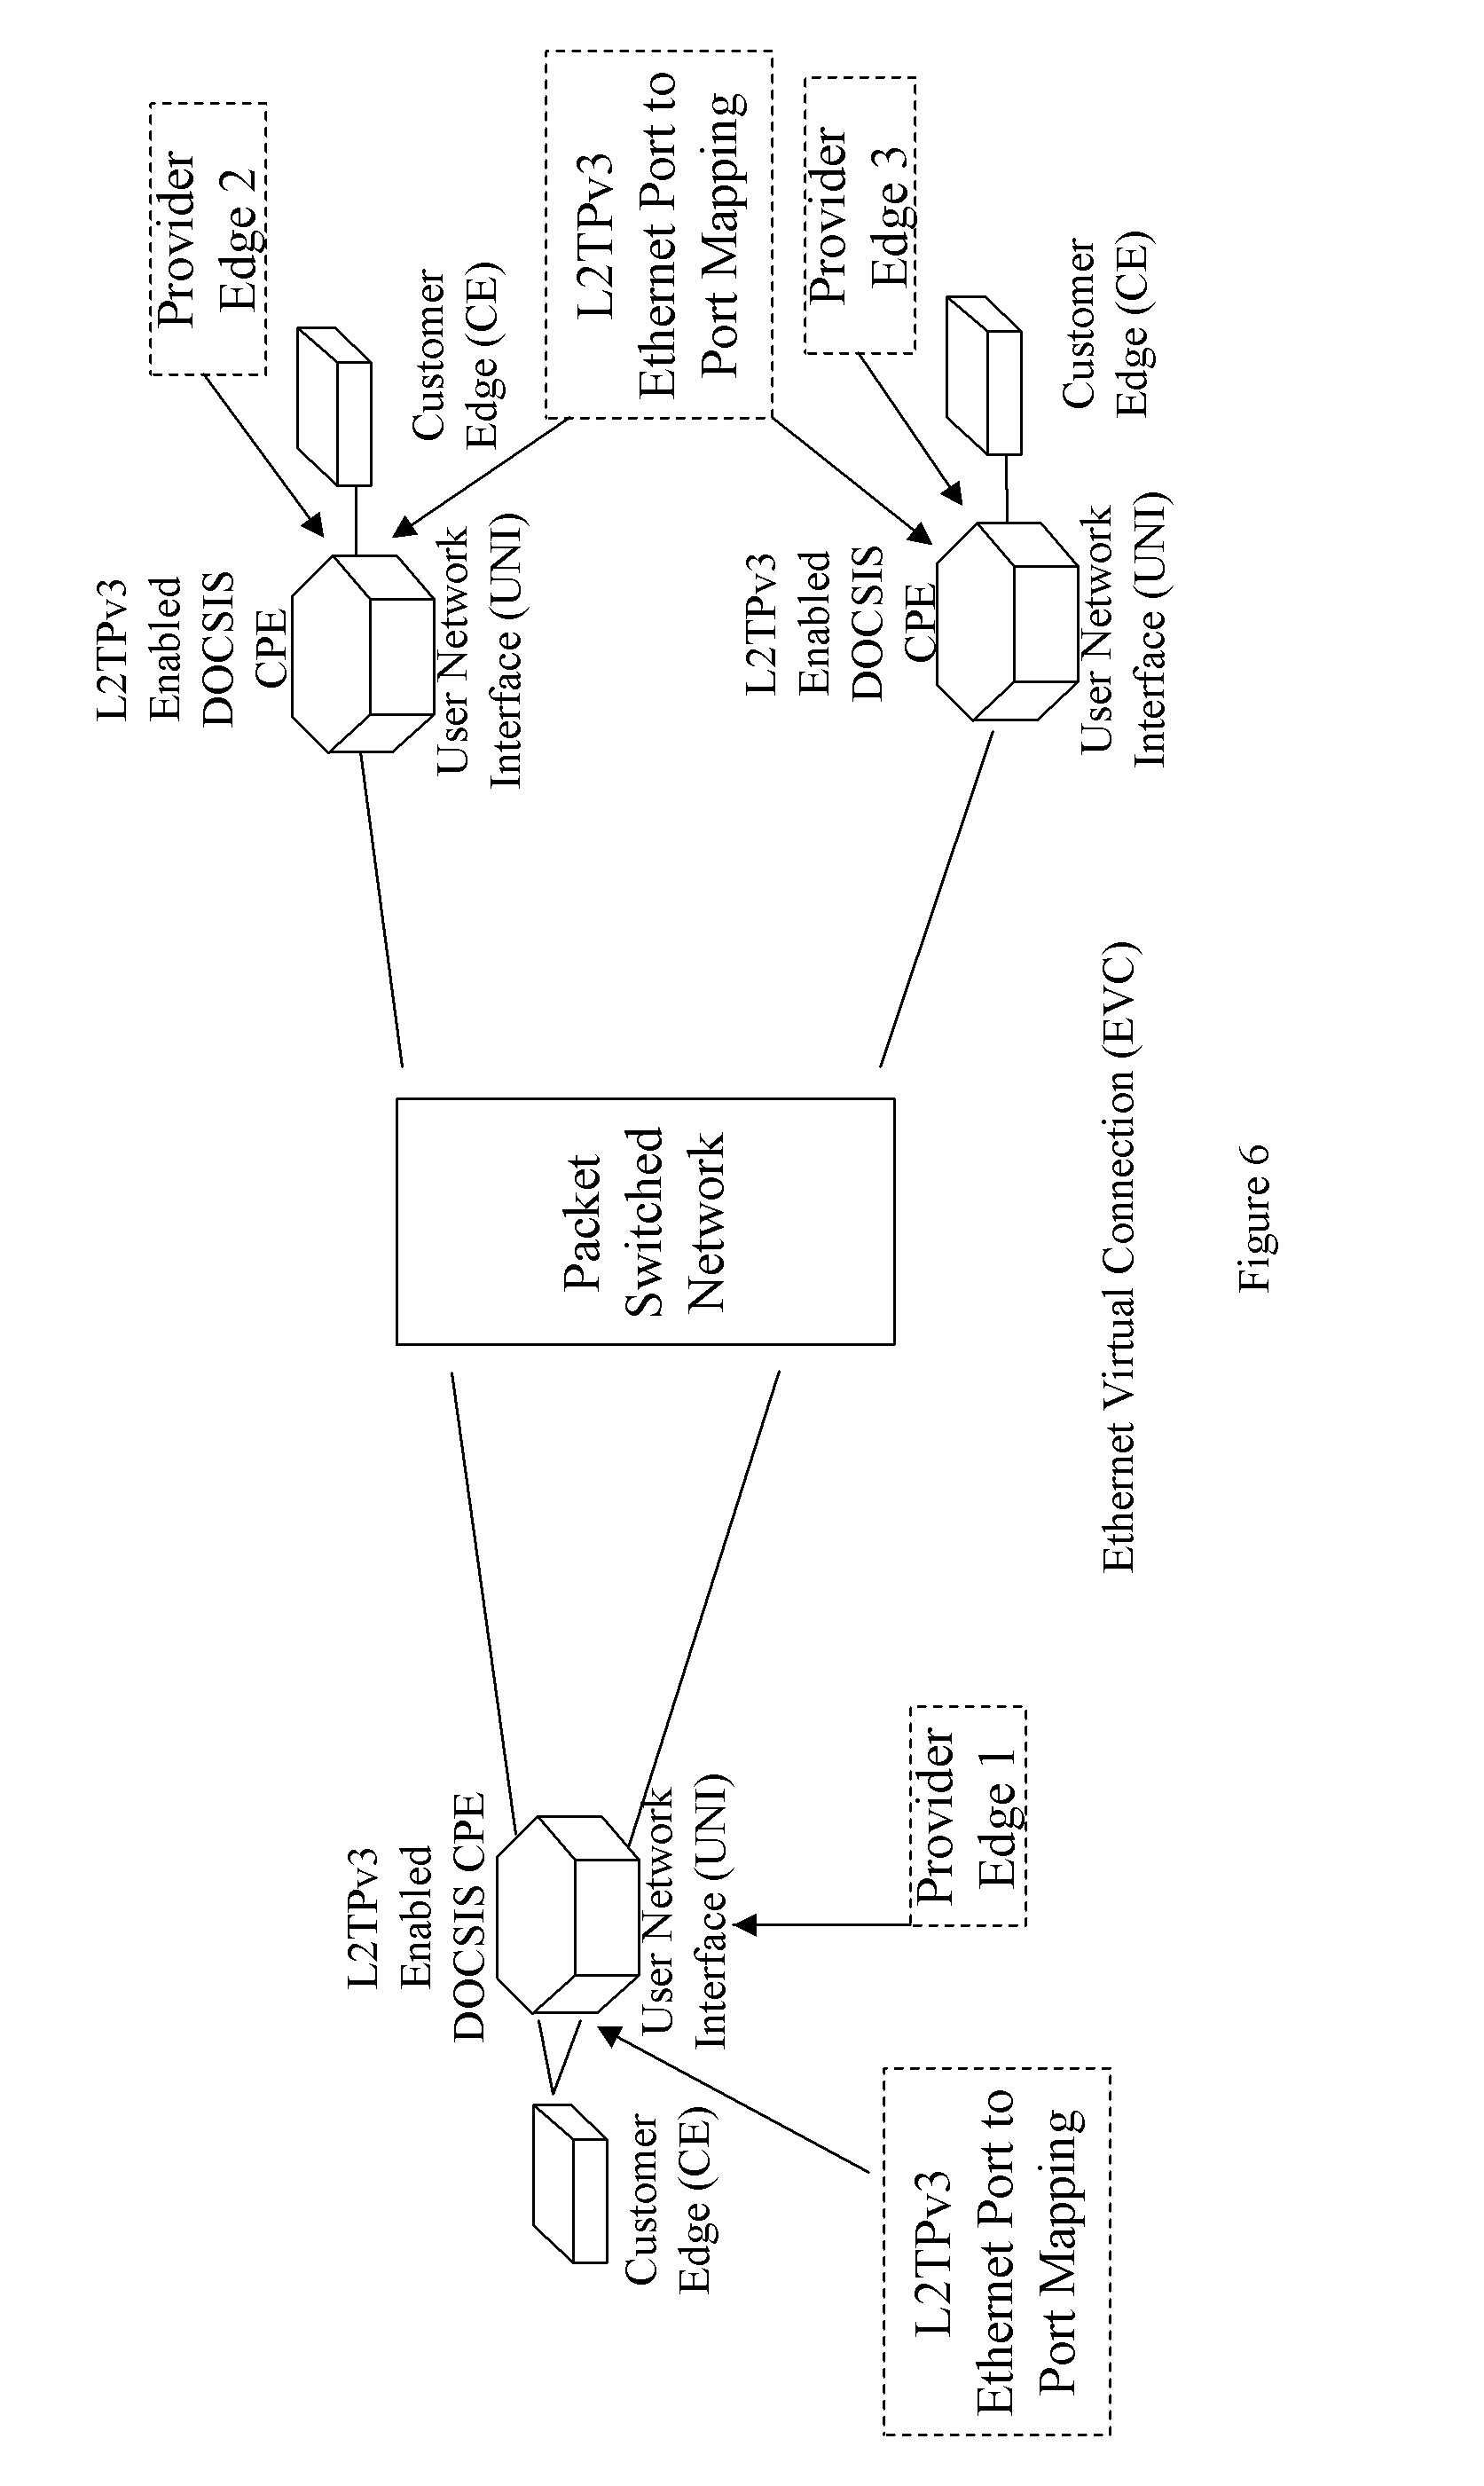 براءة الاختراع US20090274156 - Carrier ethernet over docsis